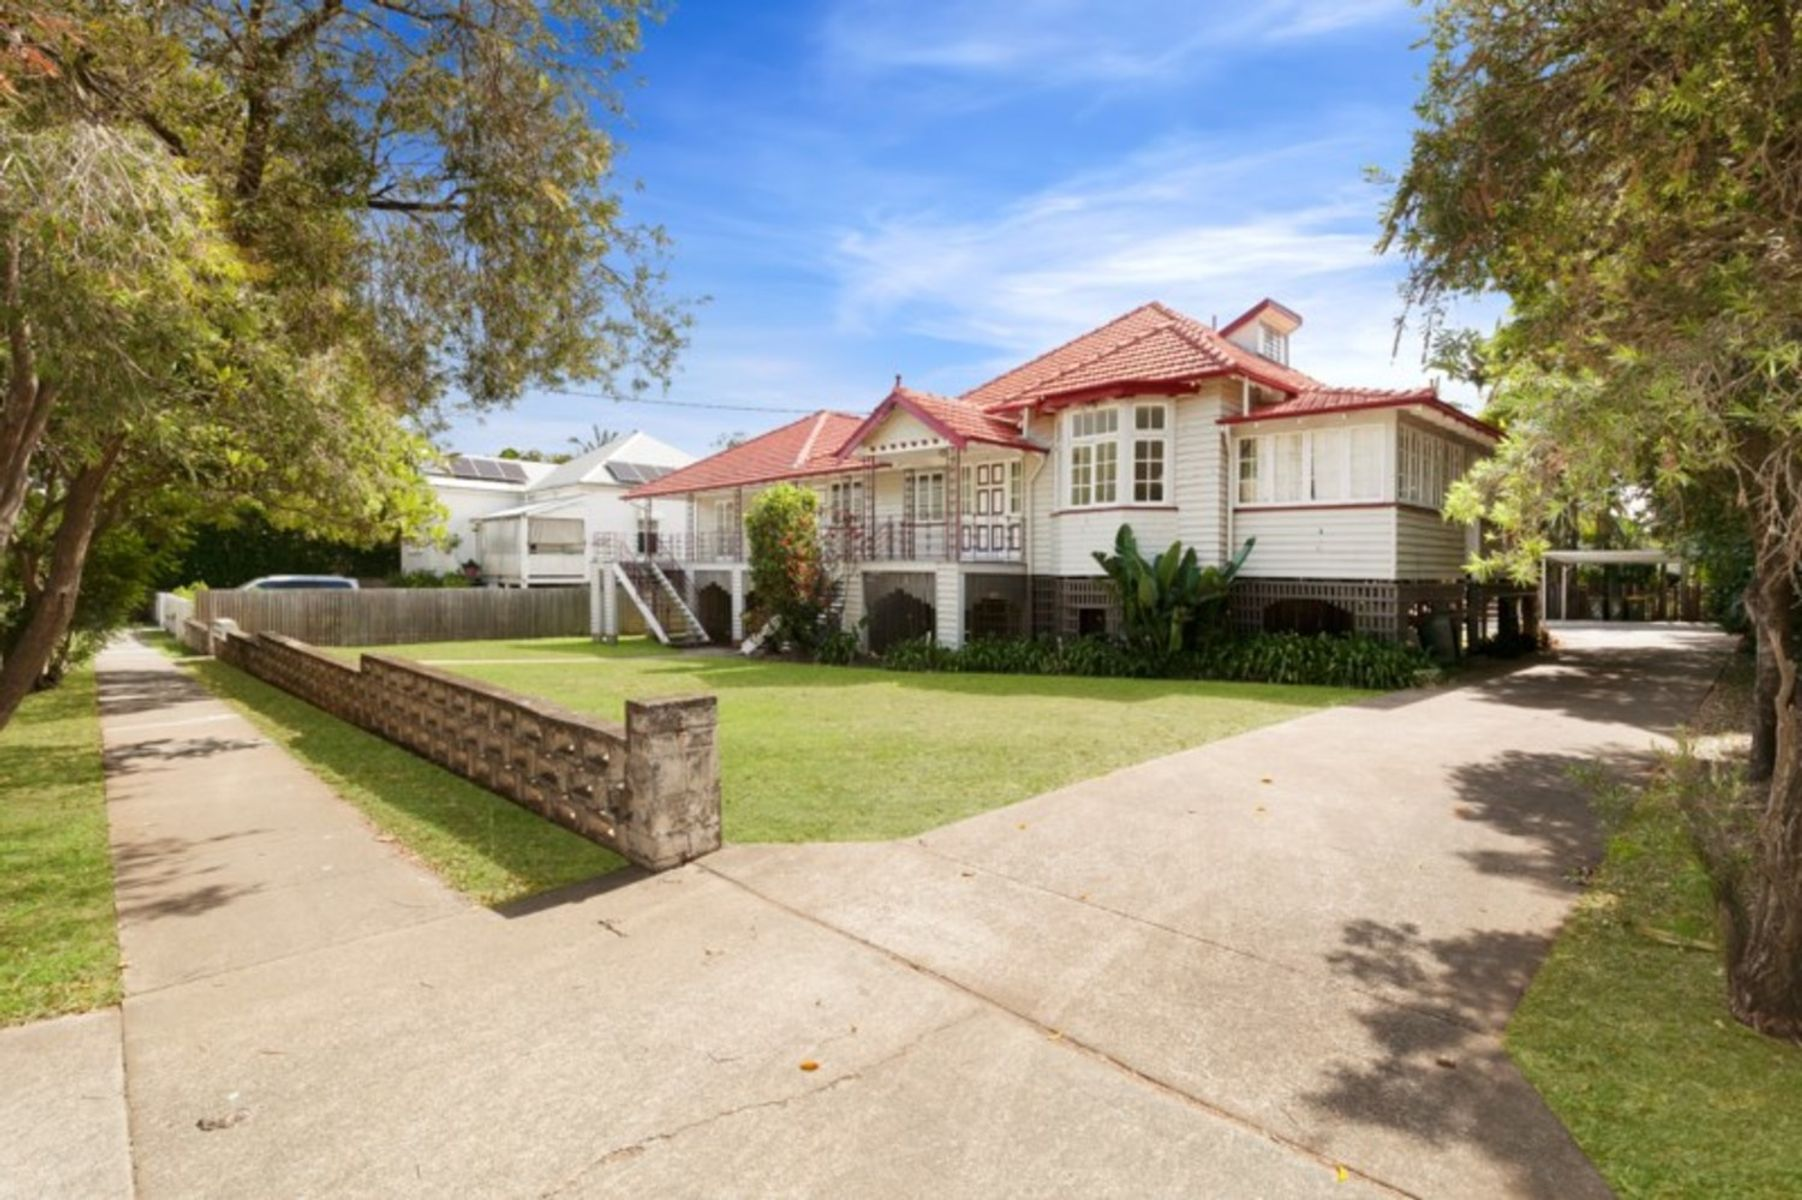 5/114 Kitchener Road, Ascot, QLD 4007